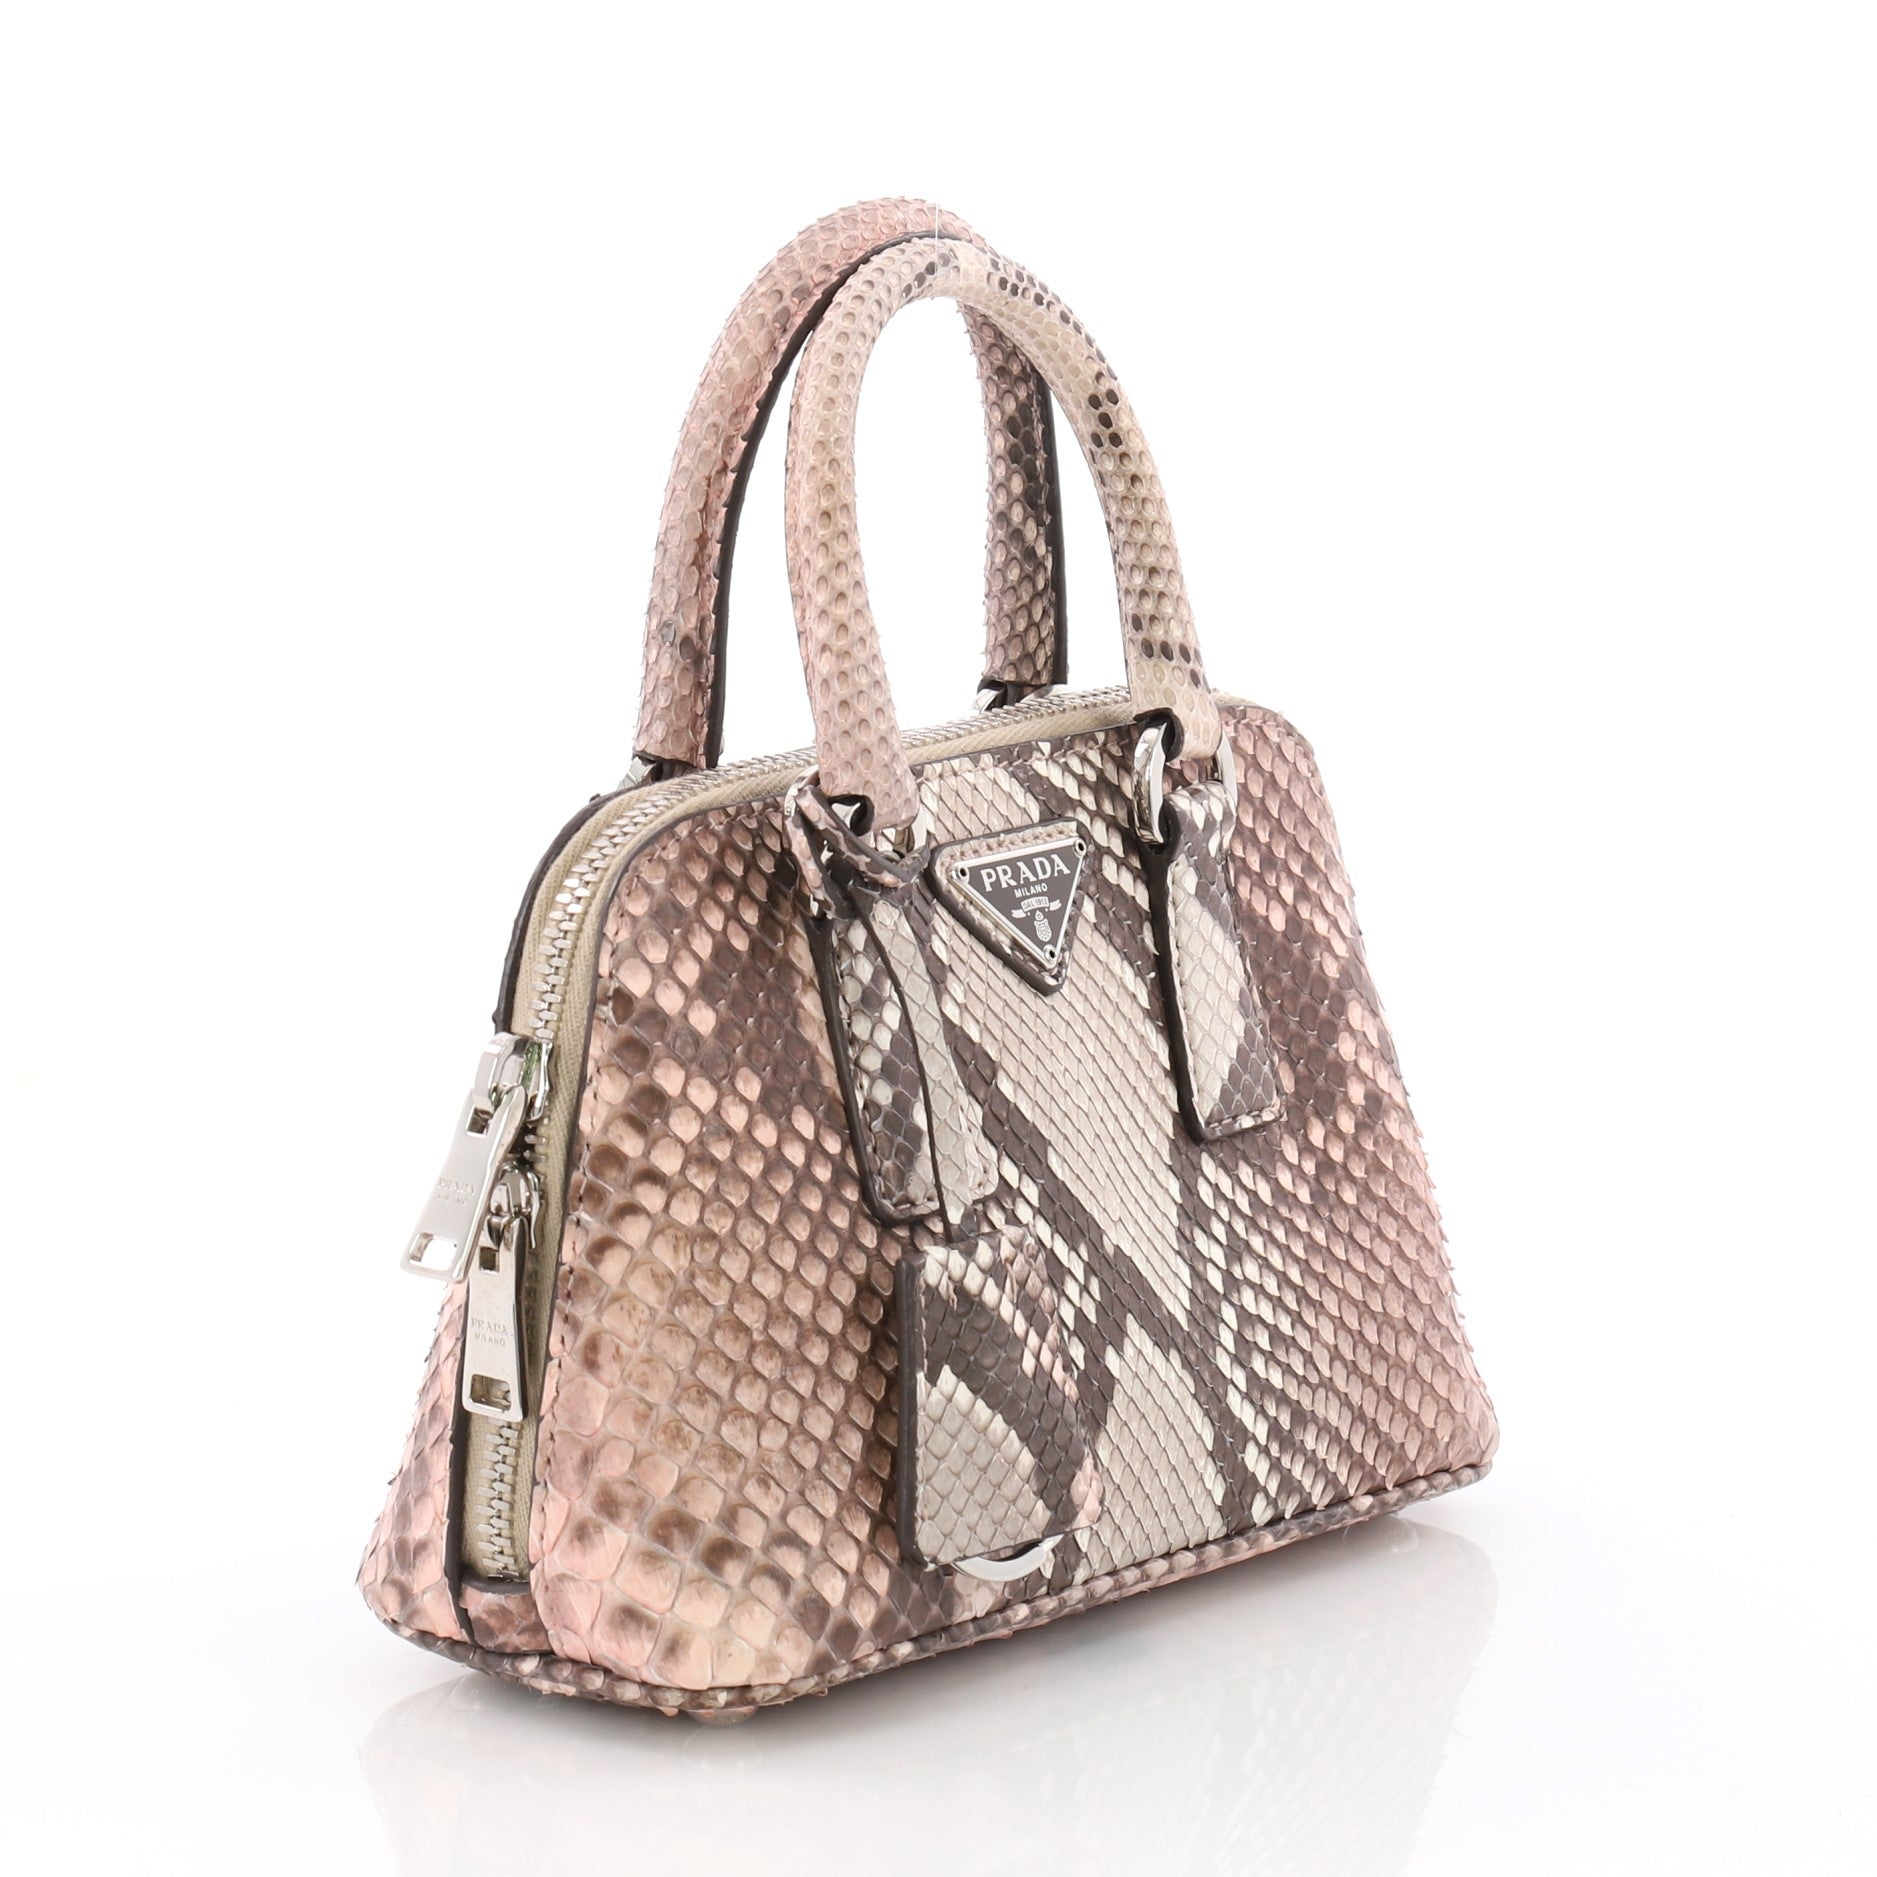 709e8c0929d3 Prada Handbags Germany | Stanford Center for Opportunity Policy in ...